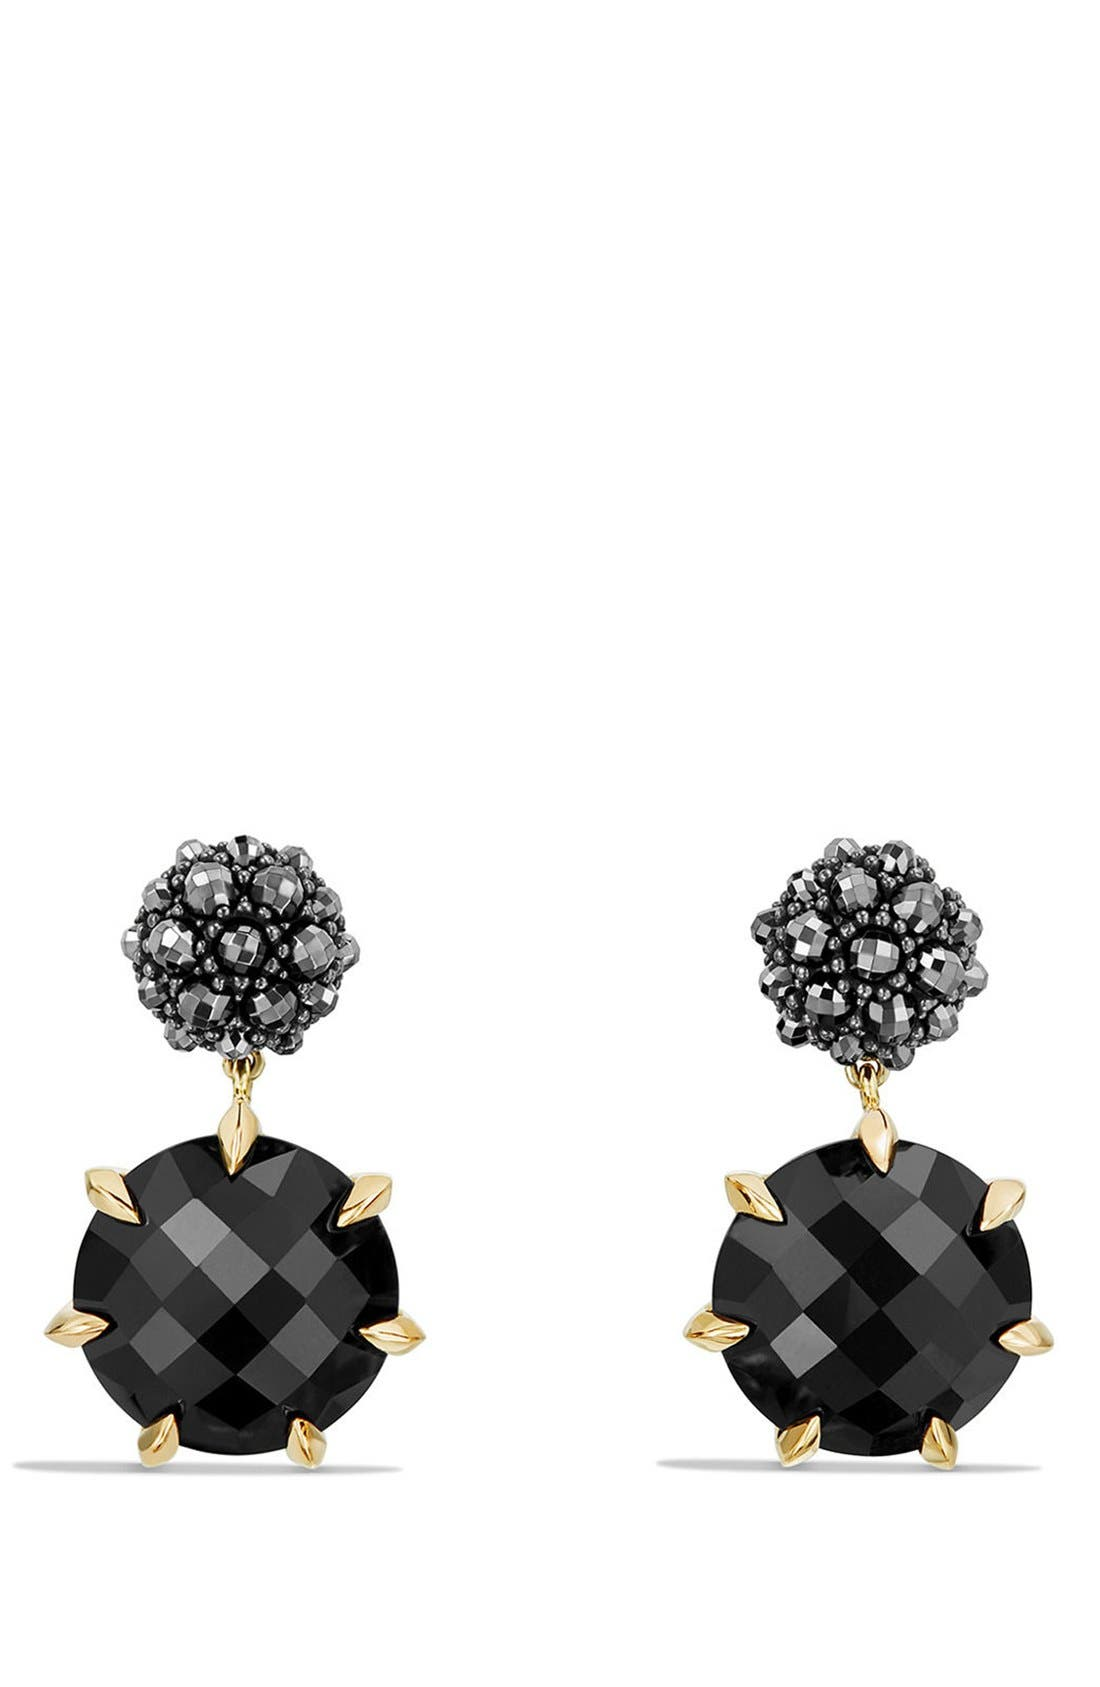 Osetra Drop Earrings with 18K Gold,                         Main,                         color, Black Onyx/ Hematine